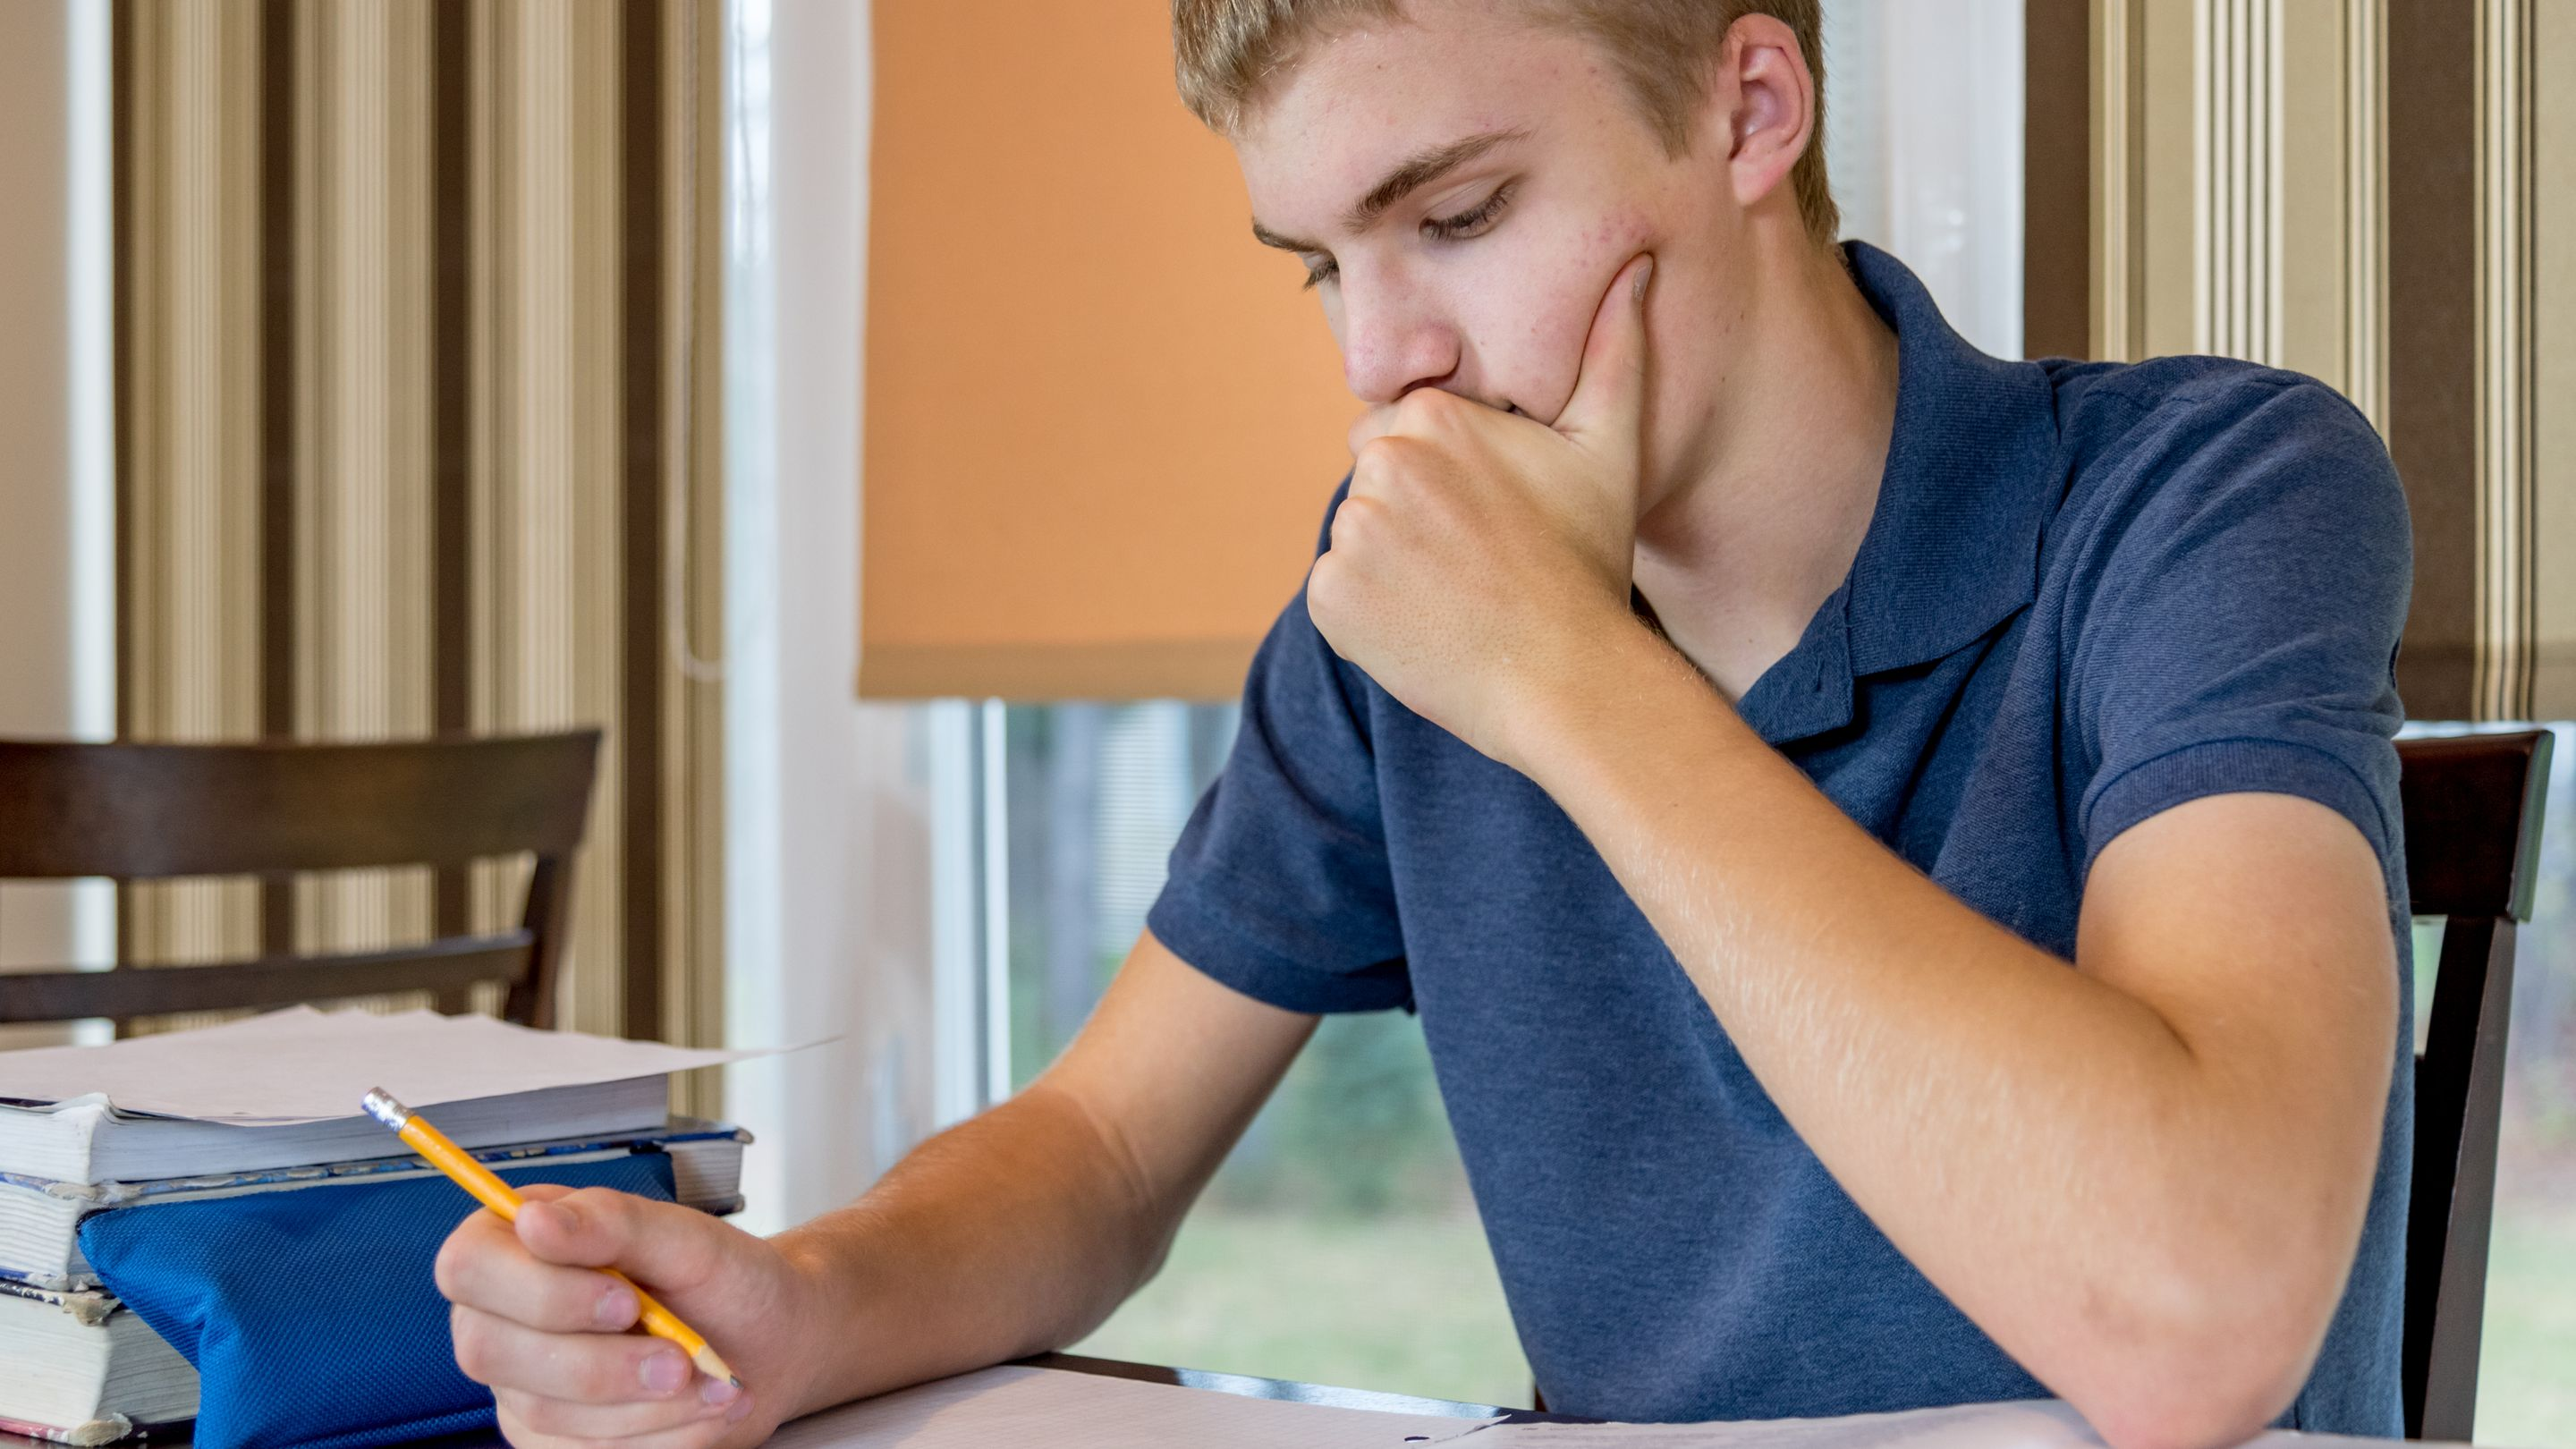 The Science Behind Student Stress